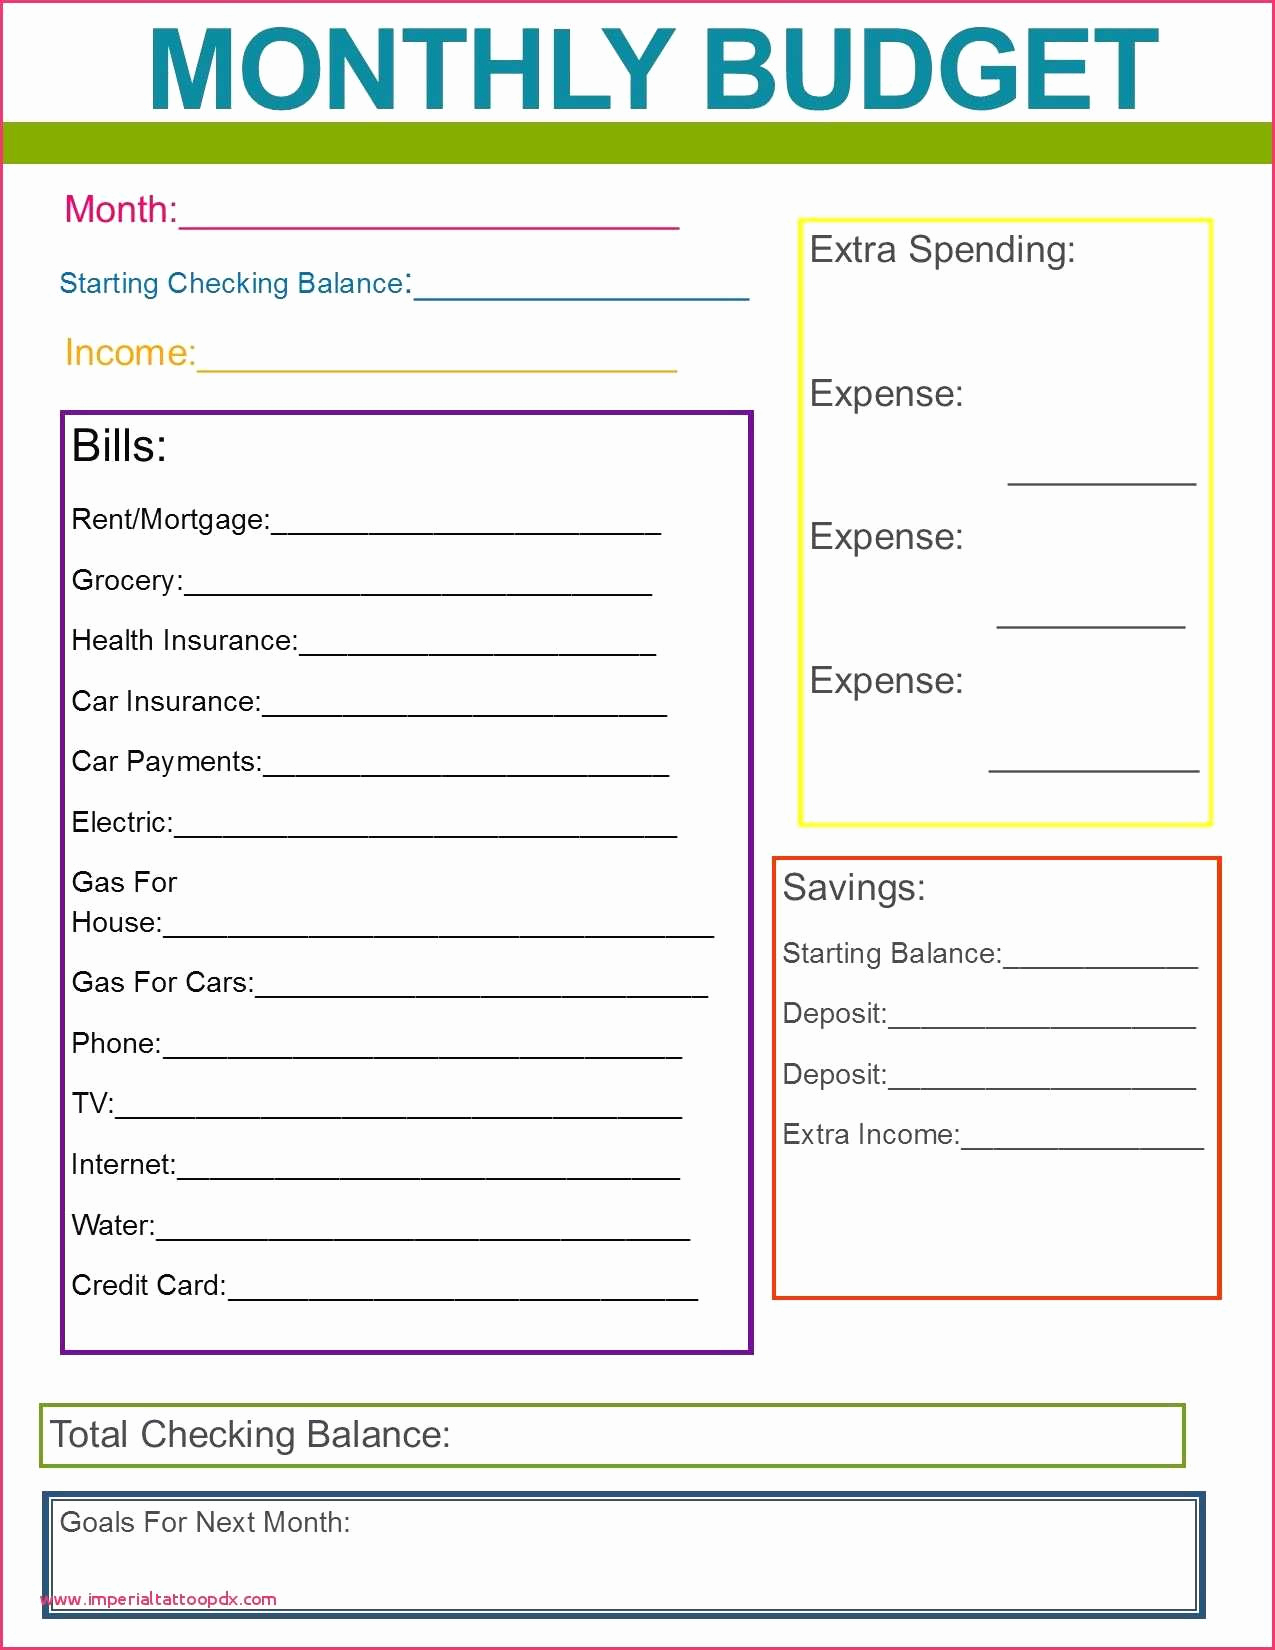 Home Maintenance Schedule Spreadsheet Pertaining To Home Maintenance Schedule Spreadsheet Beautiful Vehicle Maintenance